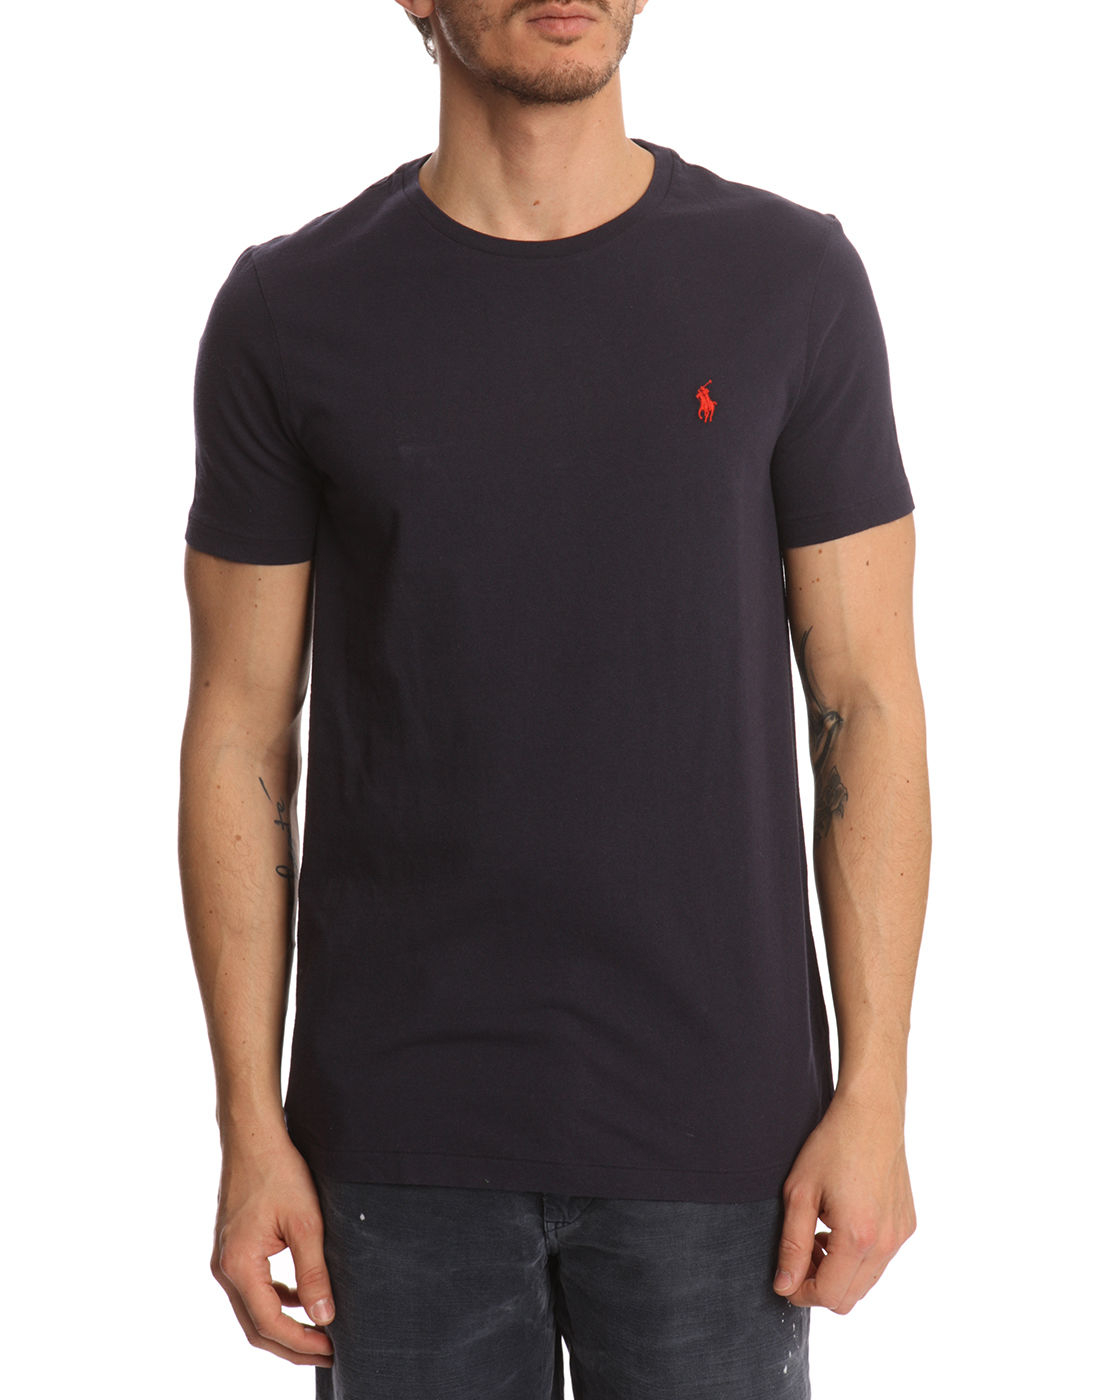 polo ralph lauren navy classic t shirt in blue for men. Black Bedroom Furniture Sets. Home Design Ideas